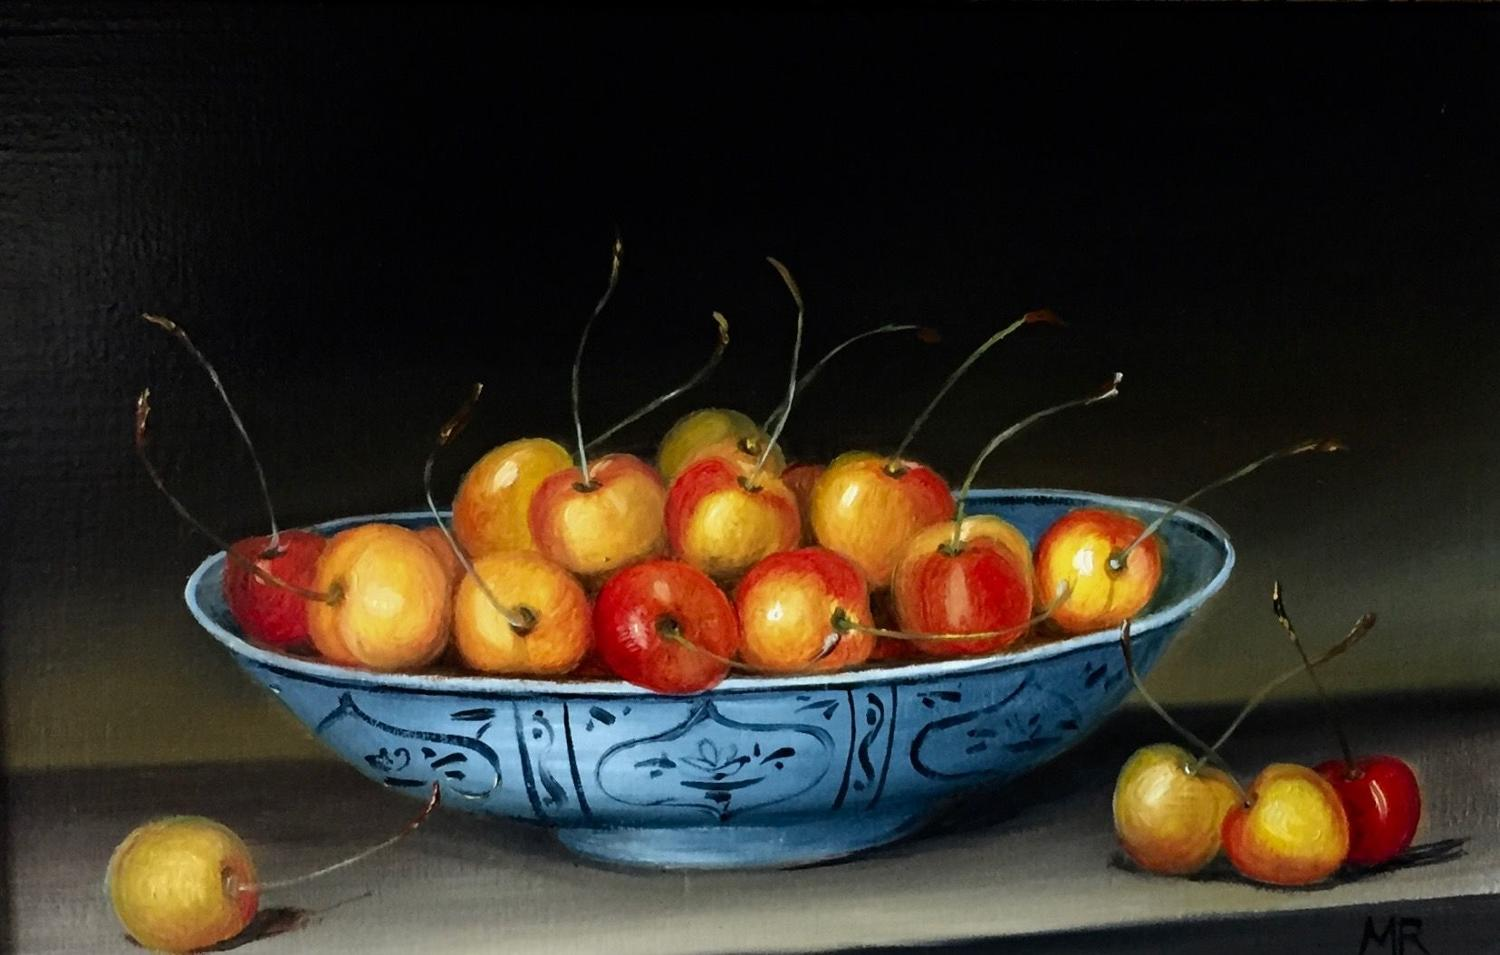 Bowl of yellow and red cherries